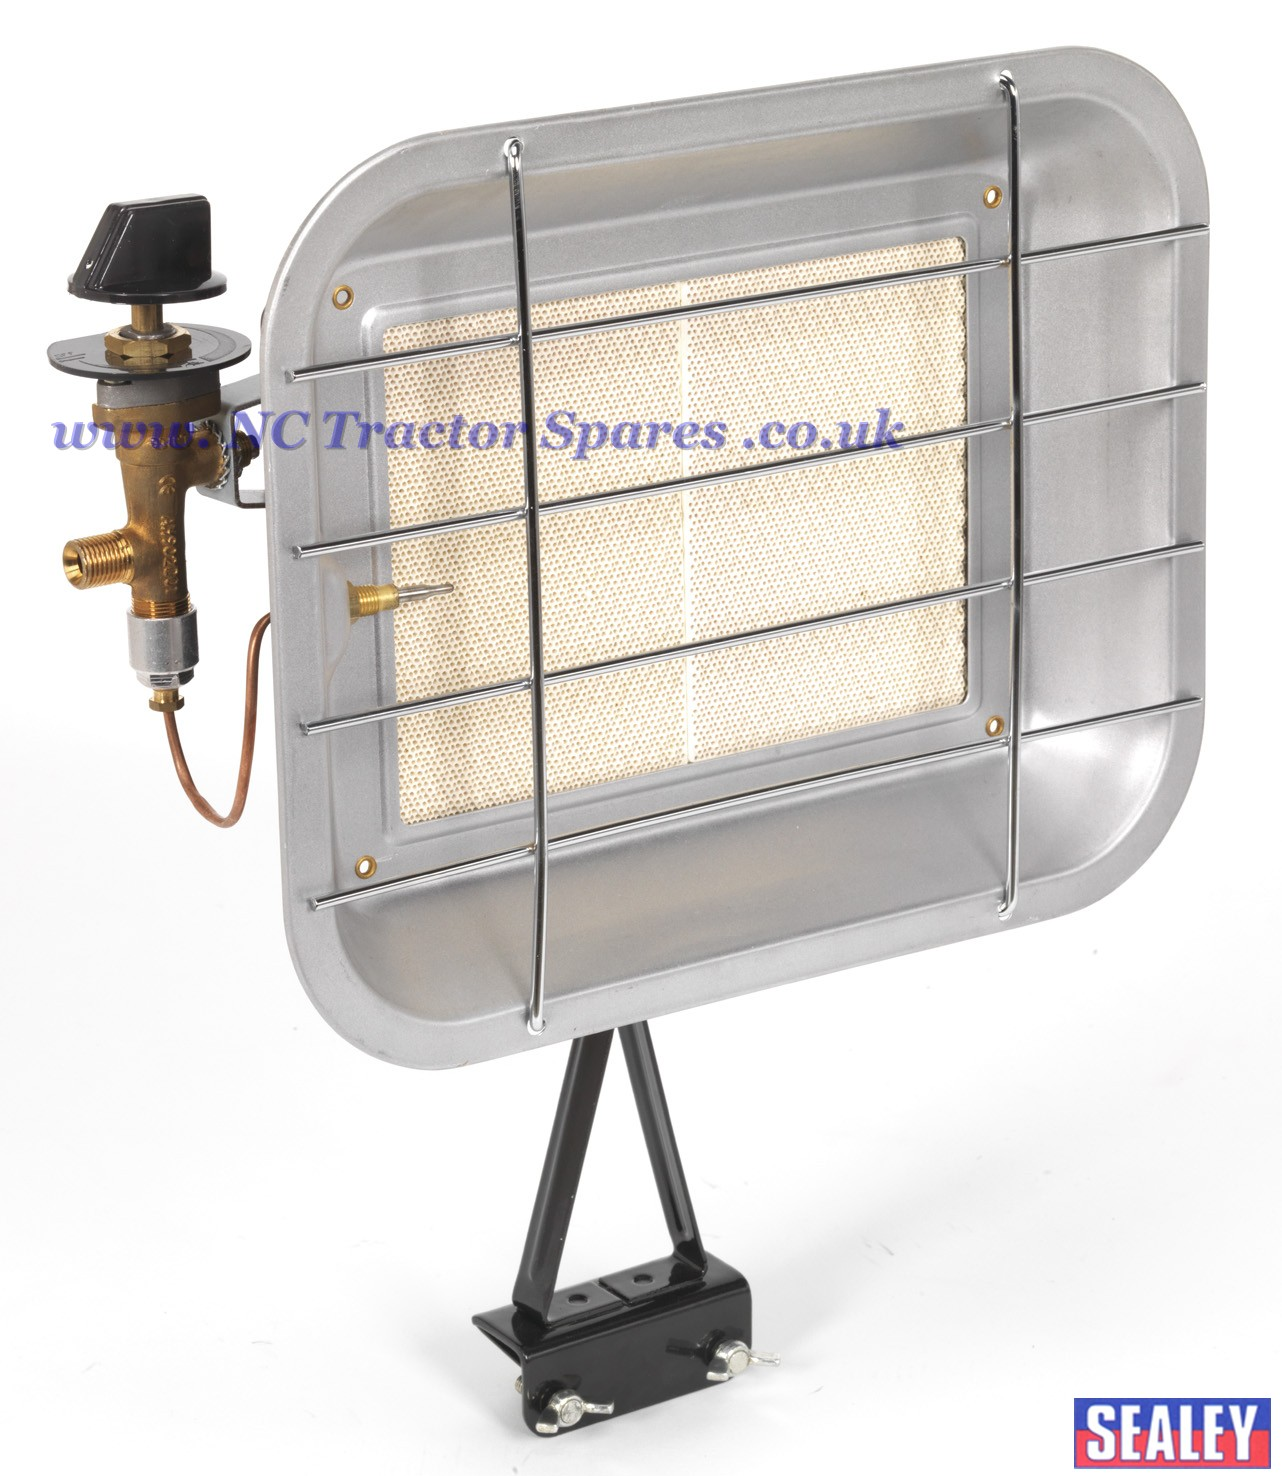 Space warmer propane heater 9 200 17 000btu hr - Small propane space heater collection ...